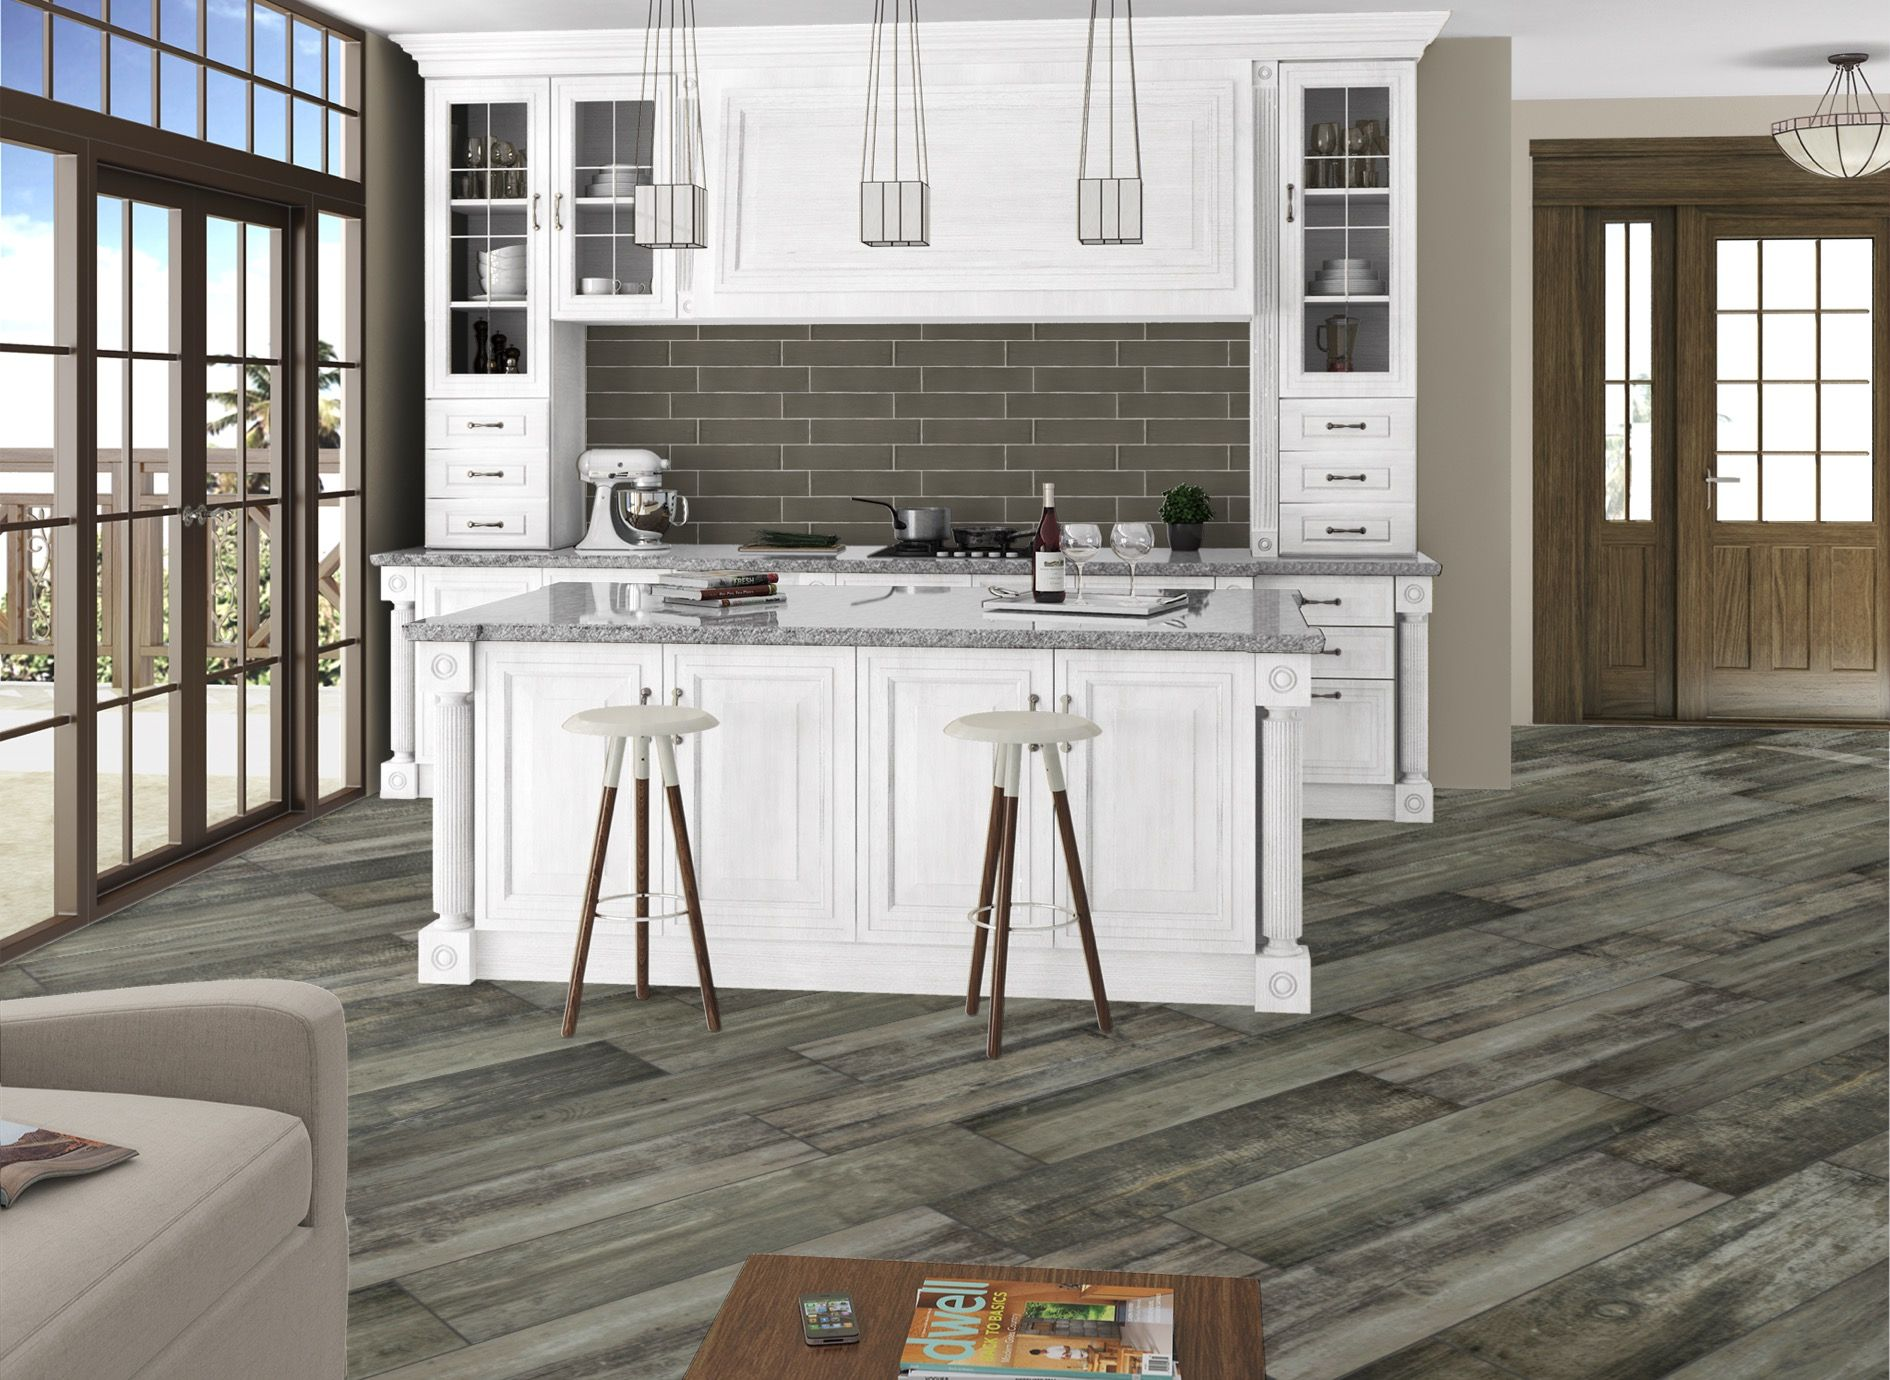 Design Evo Tiles Colorker Retro Arley Evolution Tile Design App Arley